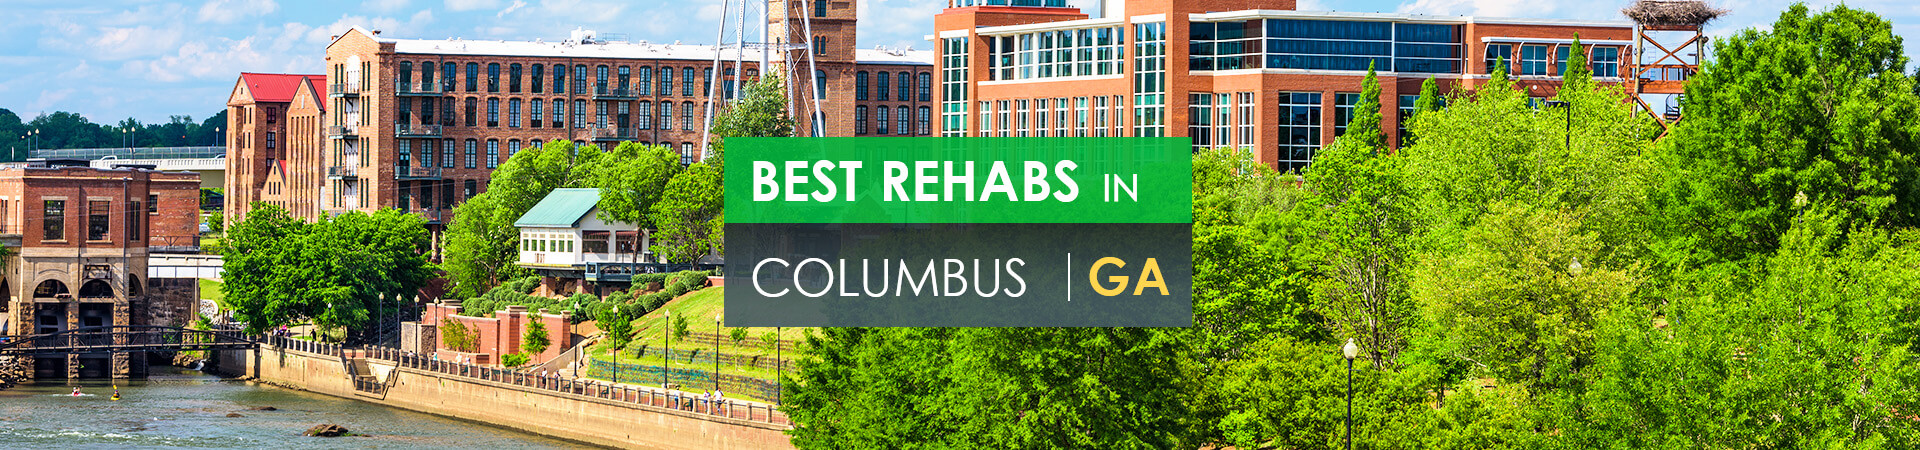 Best rehabs in Columbus, GA